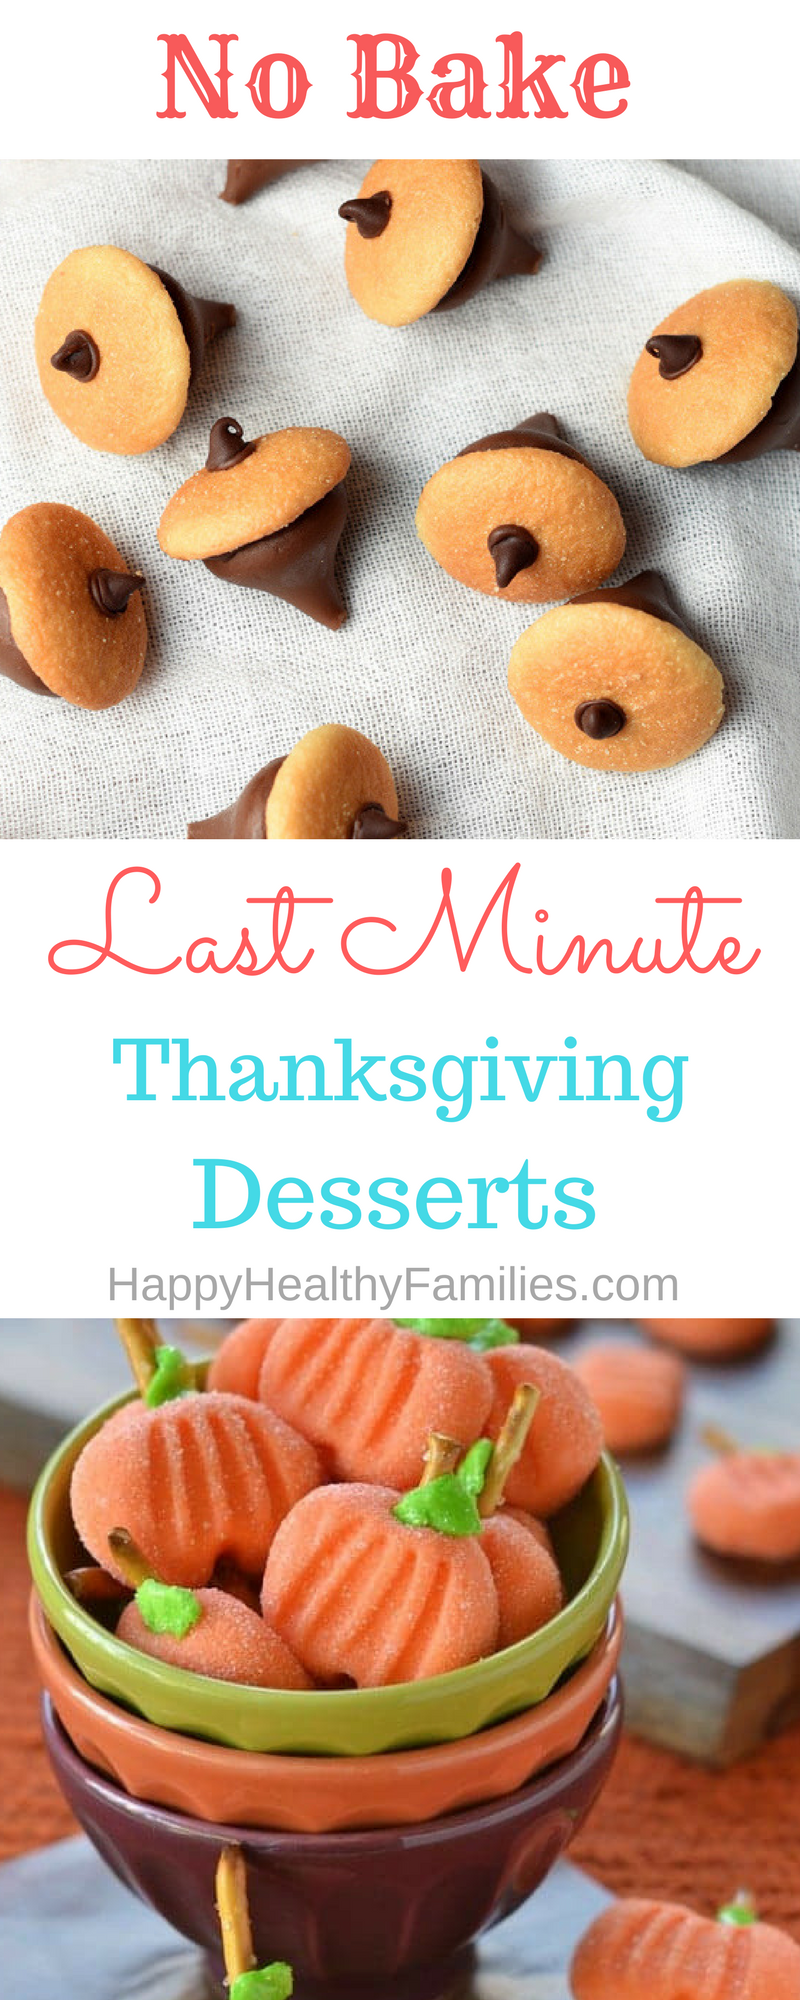 Quick Last Minute No Bake Thanksgiving Desserts That Are Kid Friendly And So Cute